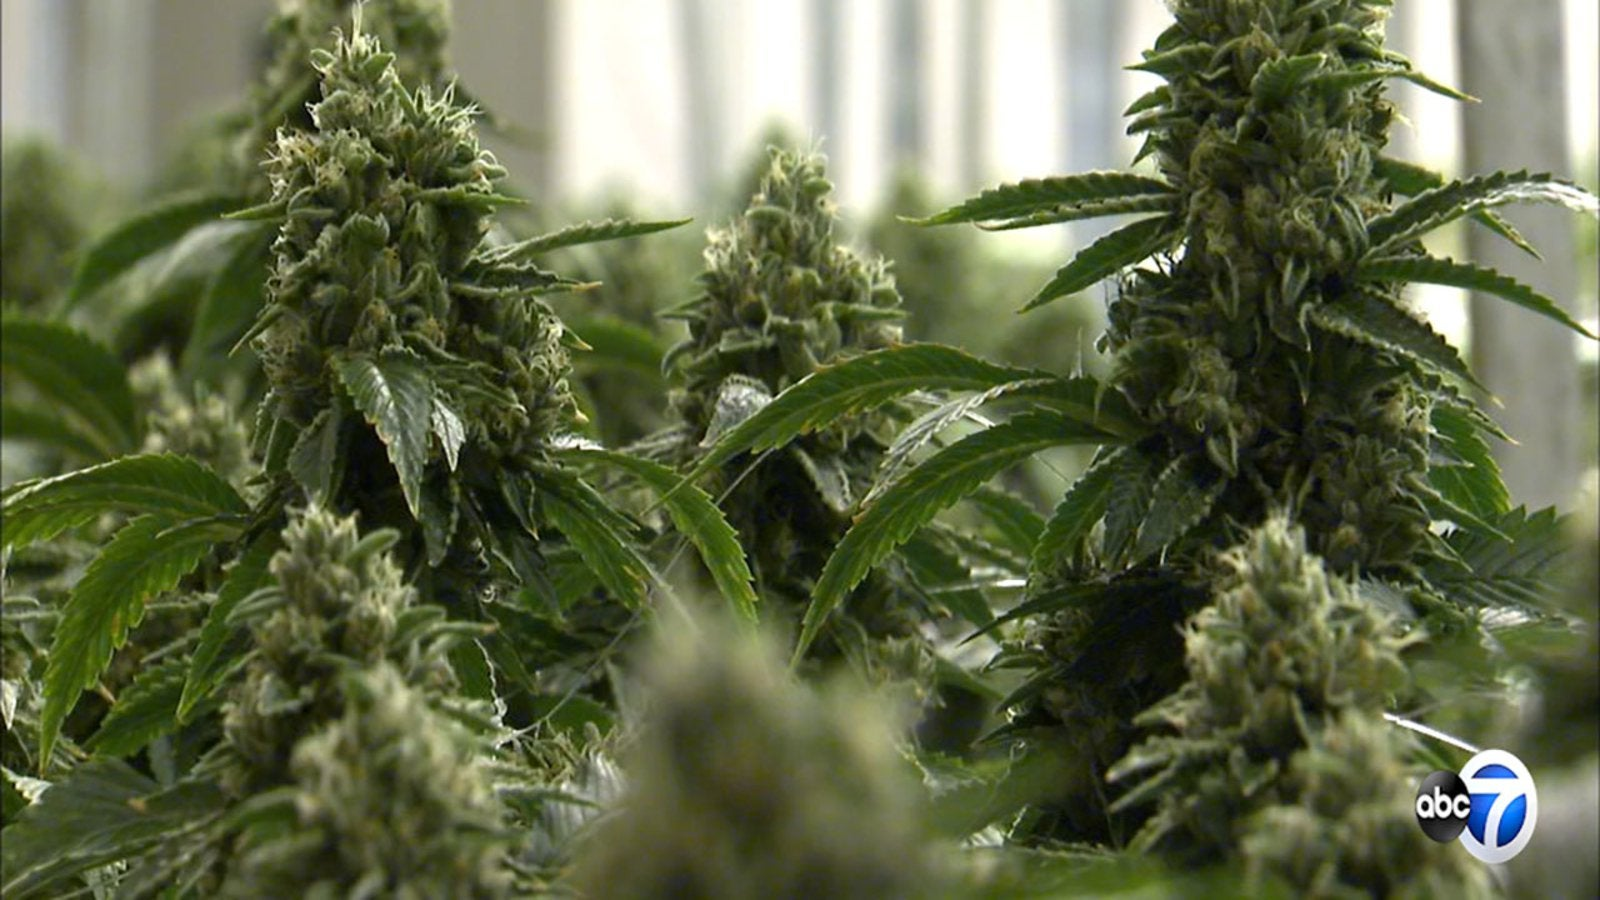 In Illinois, what will be the age to open a dispensary or sell recreational marijuana starting in January?